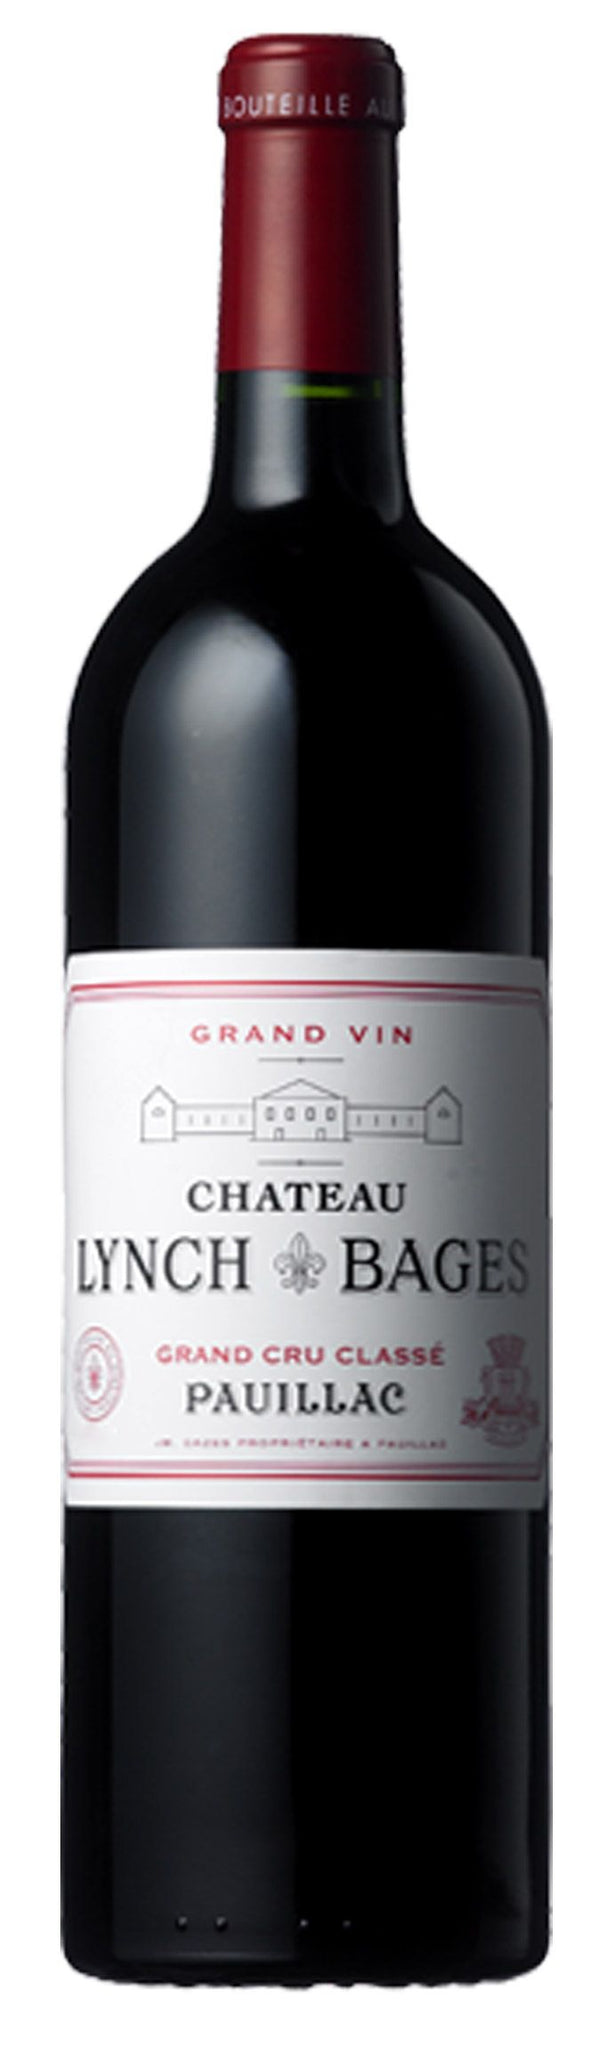 2012 Chateau Lynch Bages